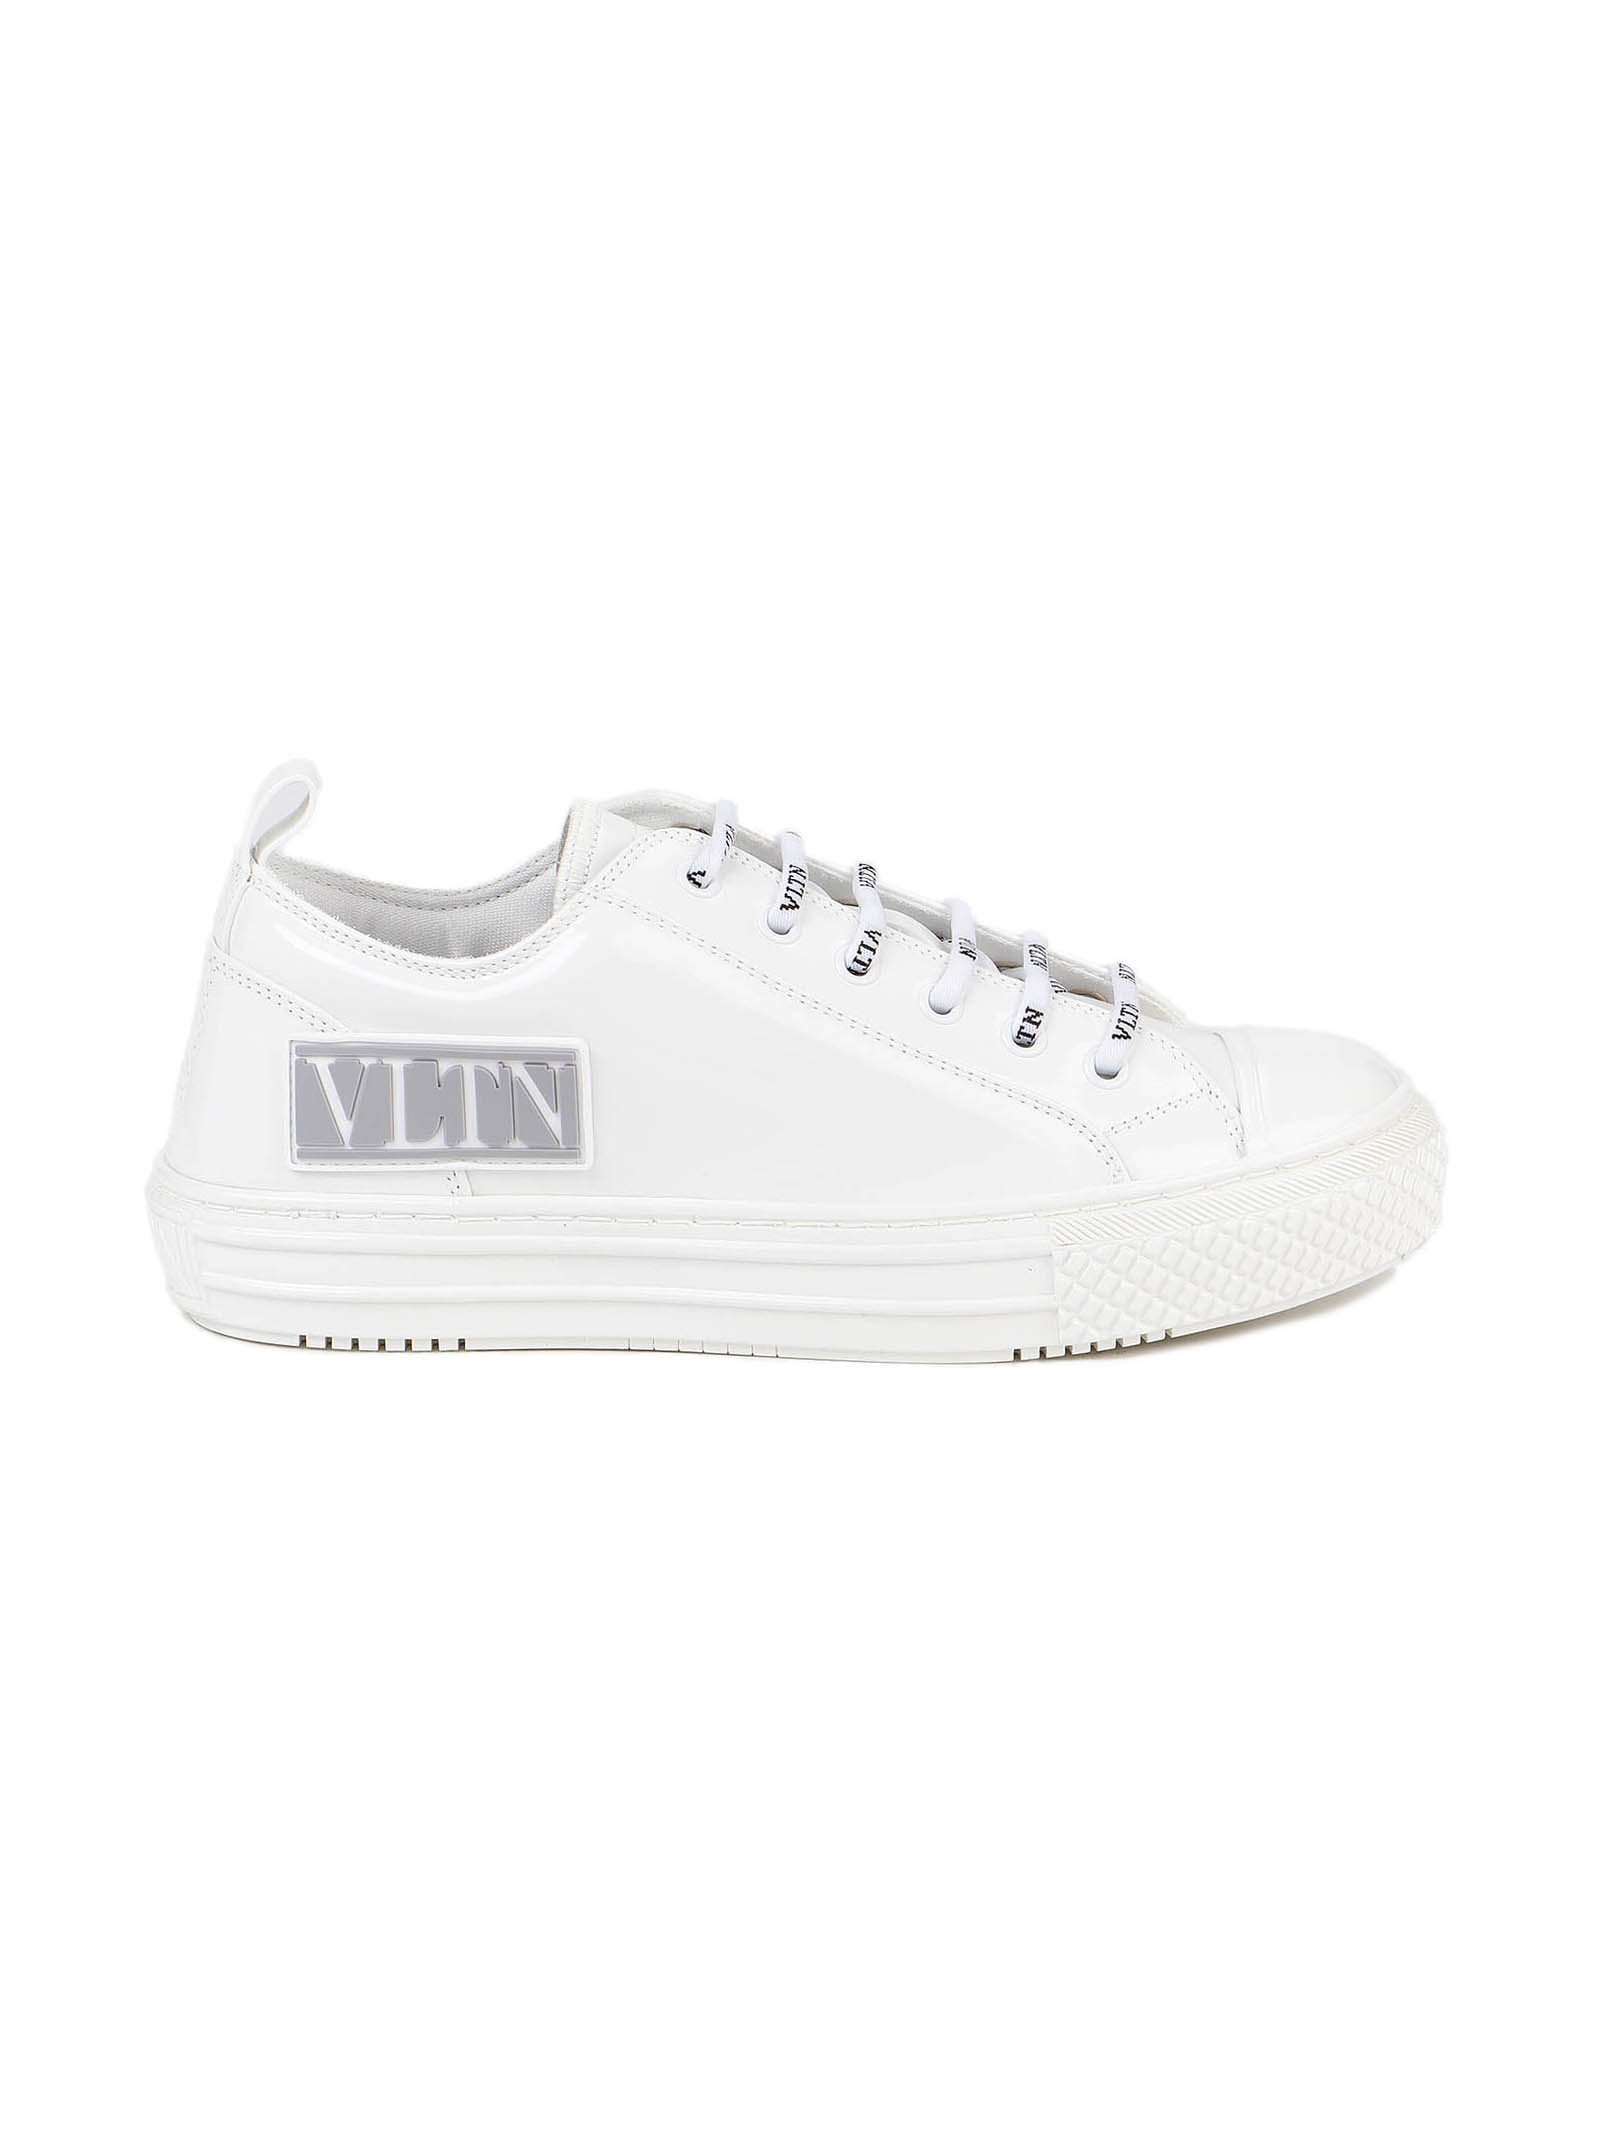 Immagine di Valentino Garavani | Vltn Tag Low Top Sneakers